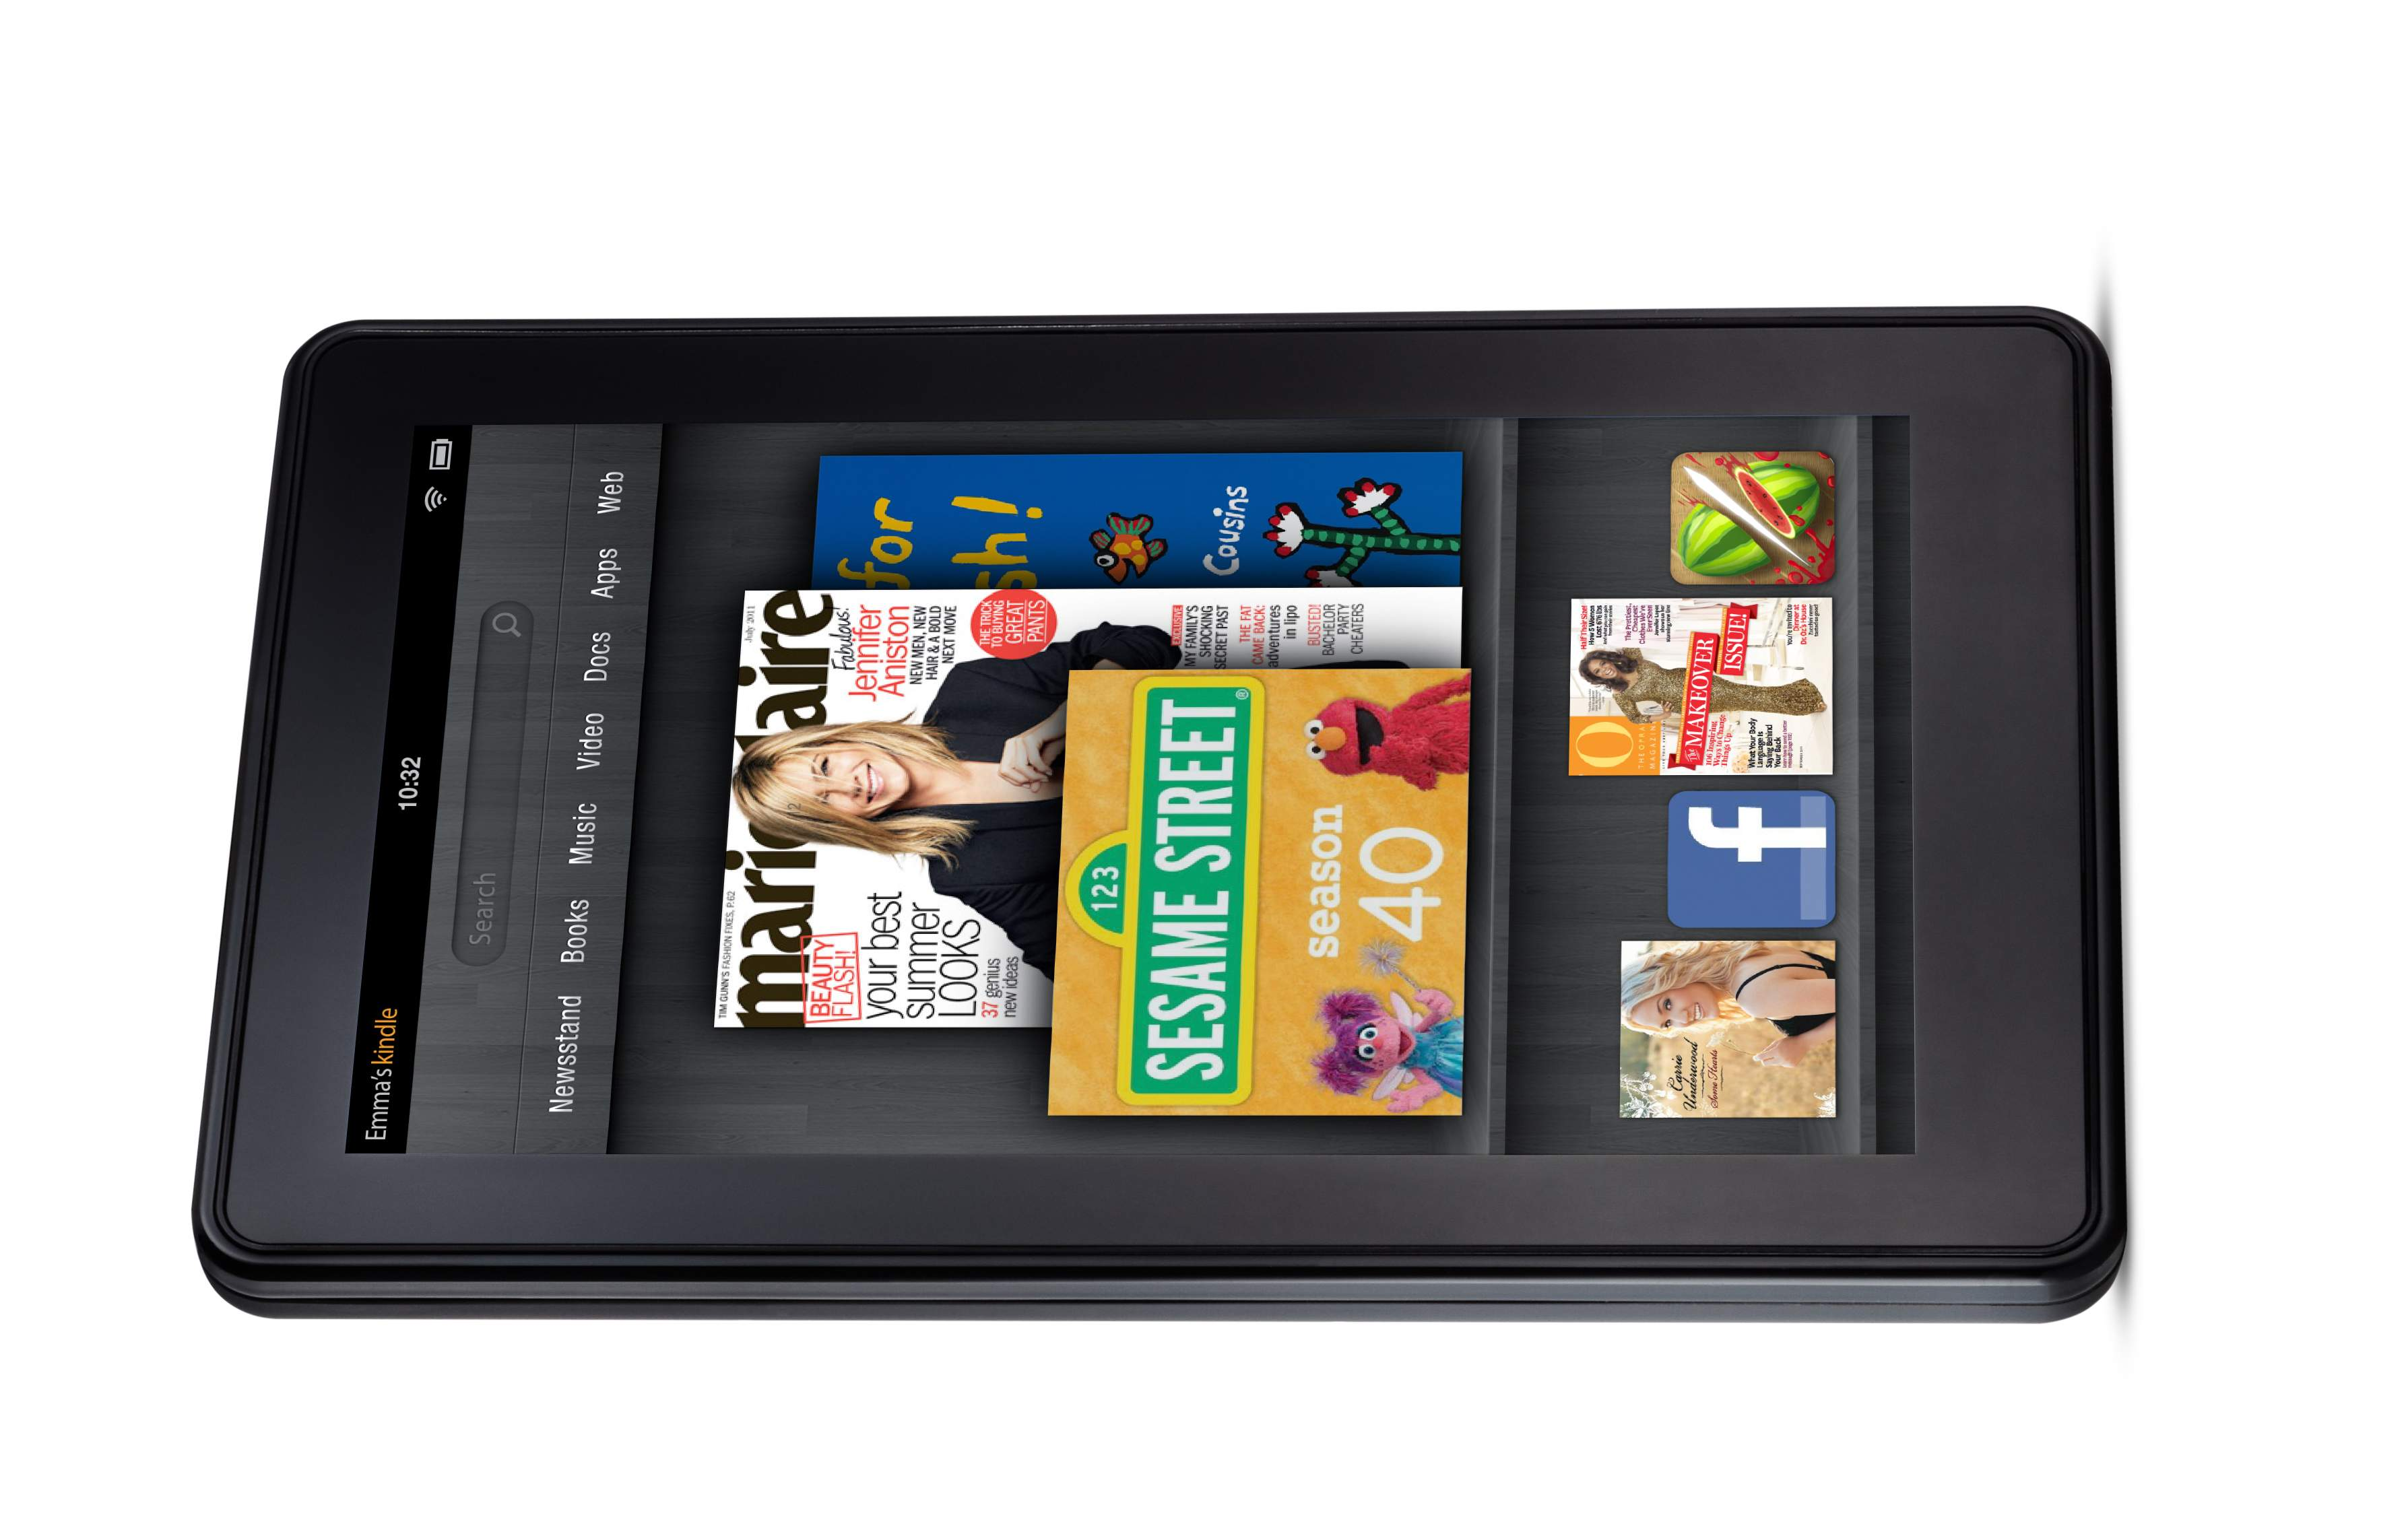 marketing mix on kindle fire The kindle fire's $19900 sale price places it well below the cost of apple's ipad2, which sells for $49900 and is the current best seller in the tablet space22 23 the amazon kindle fire is well positioned push out the other android tablets from the market at this price.